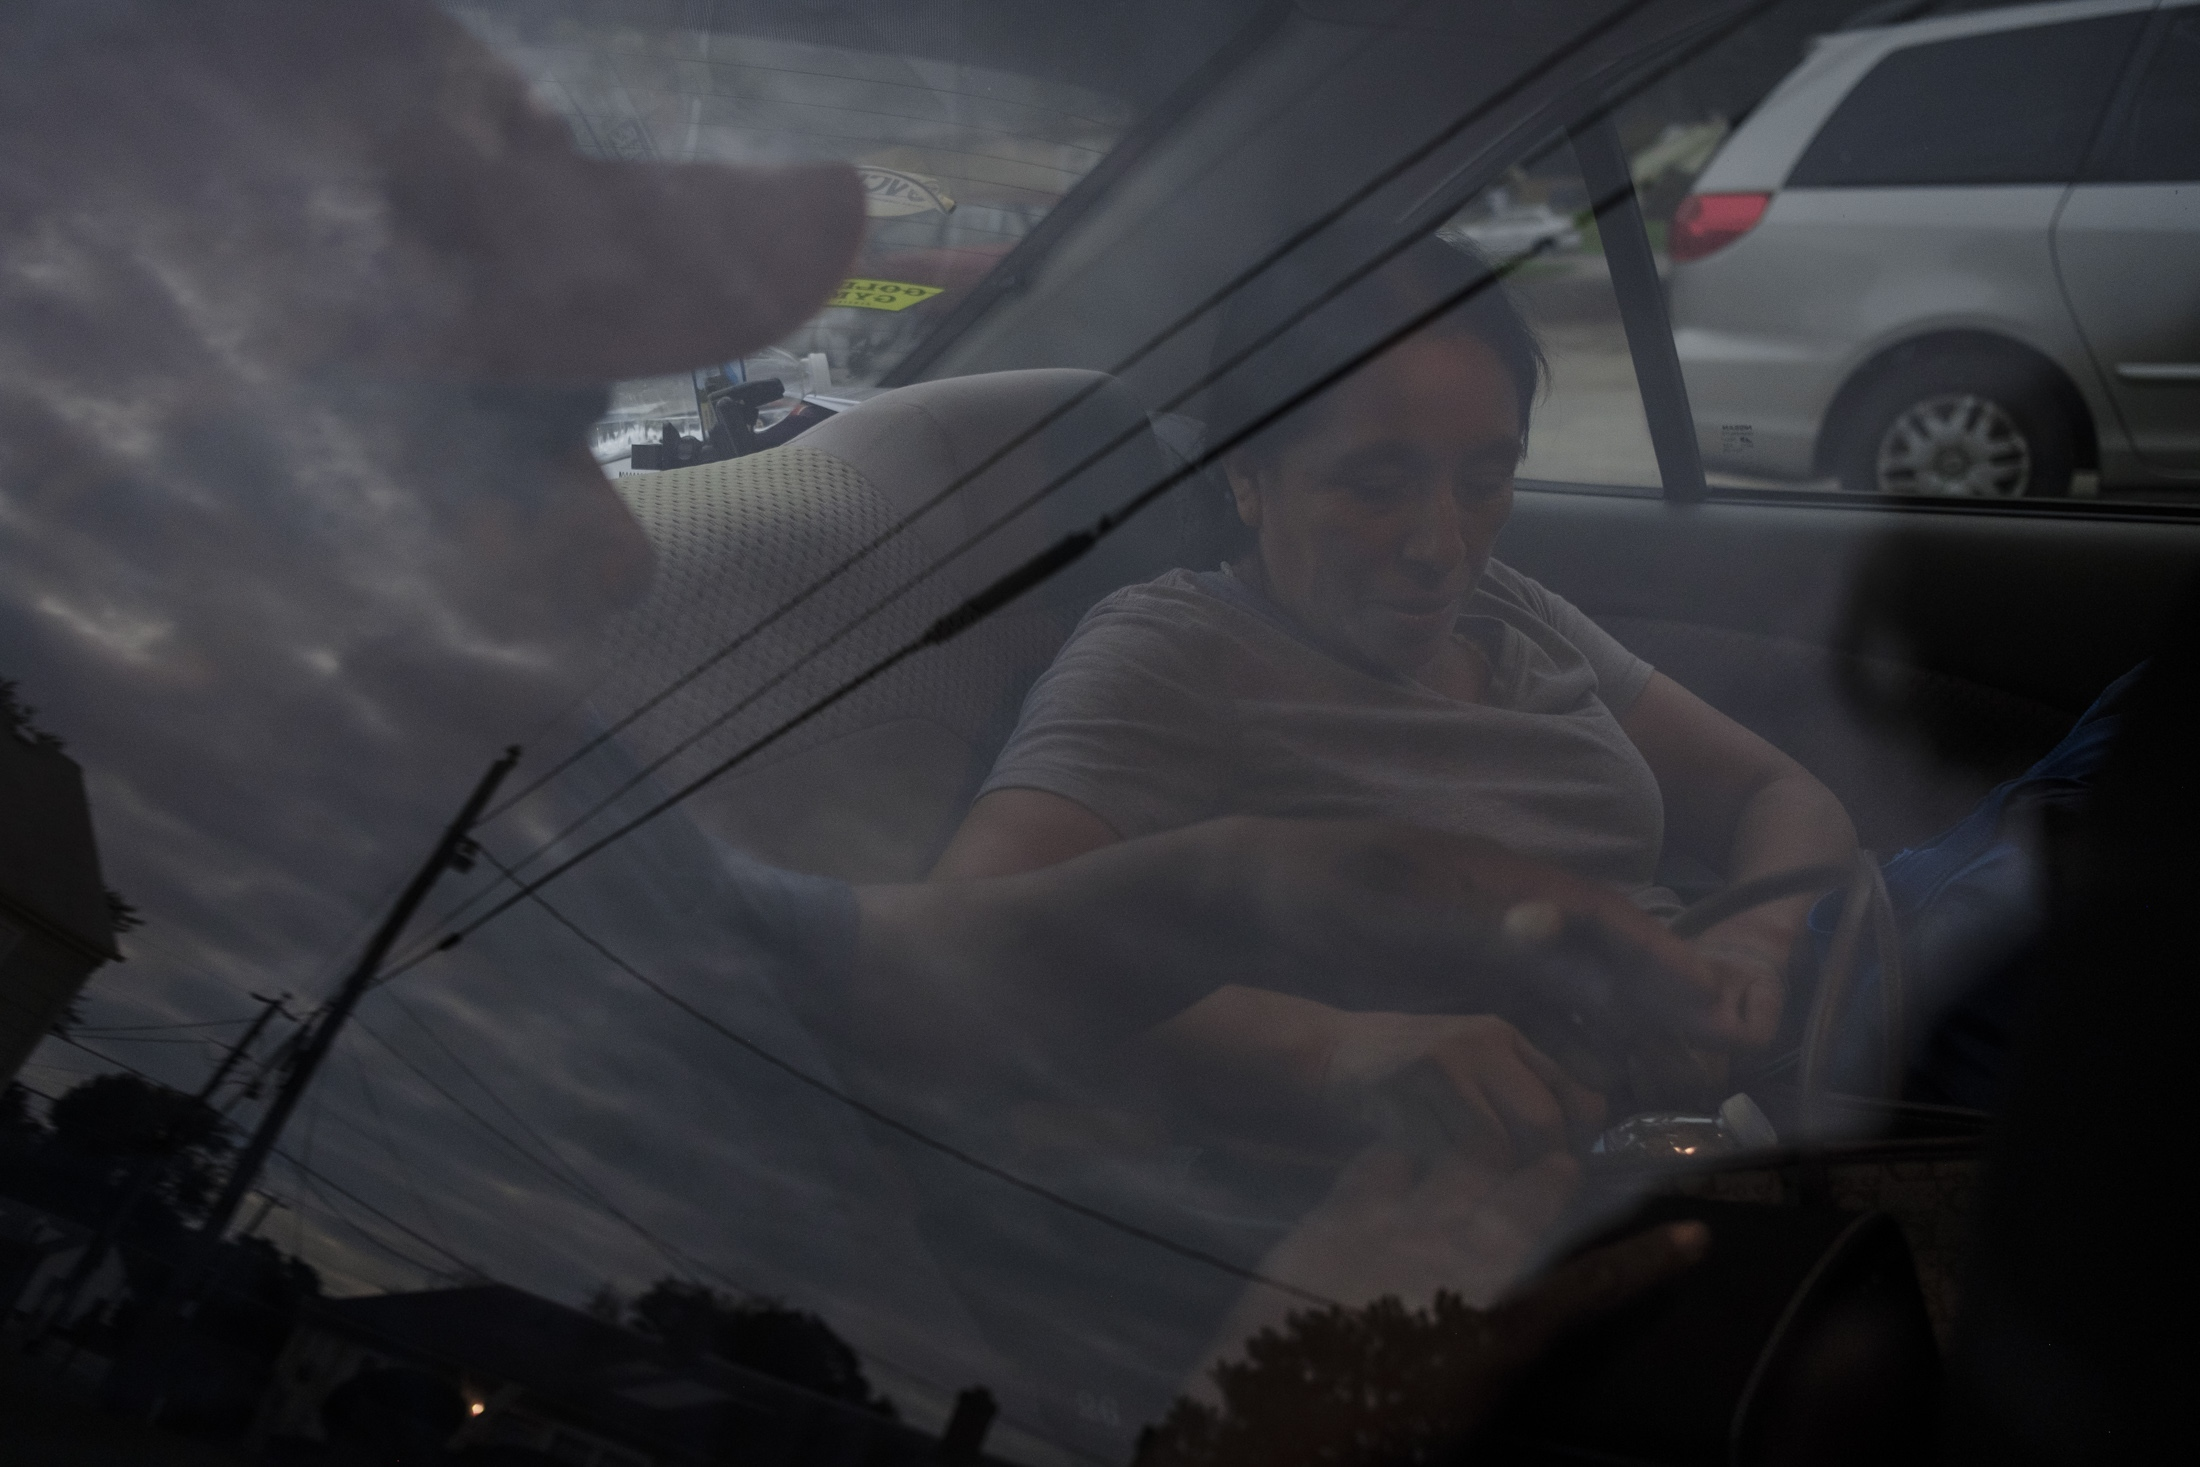 Maria at the car that will be her only way out of the persecution received by ICE.